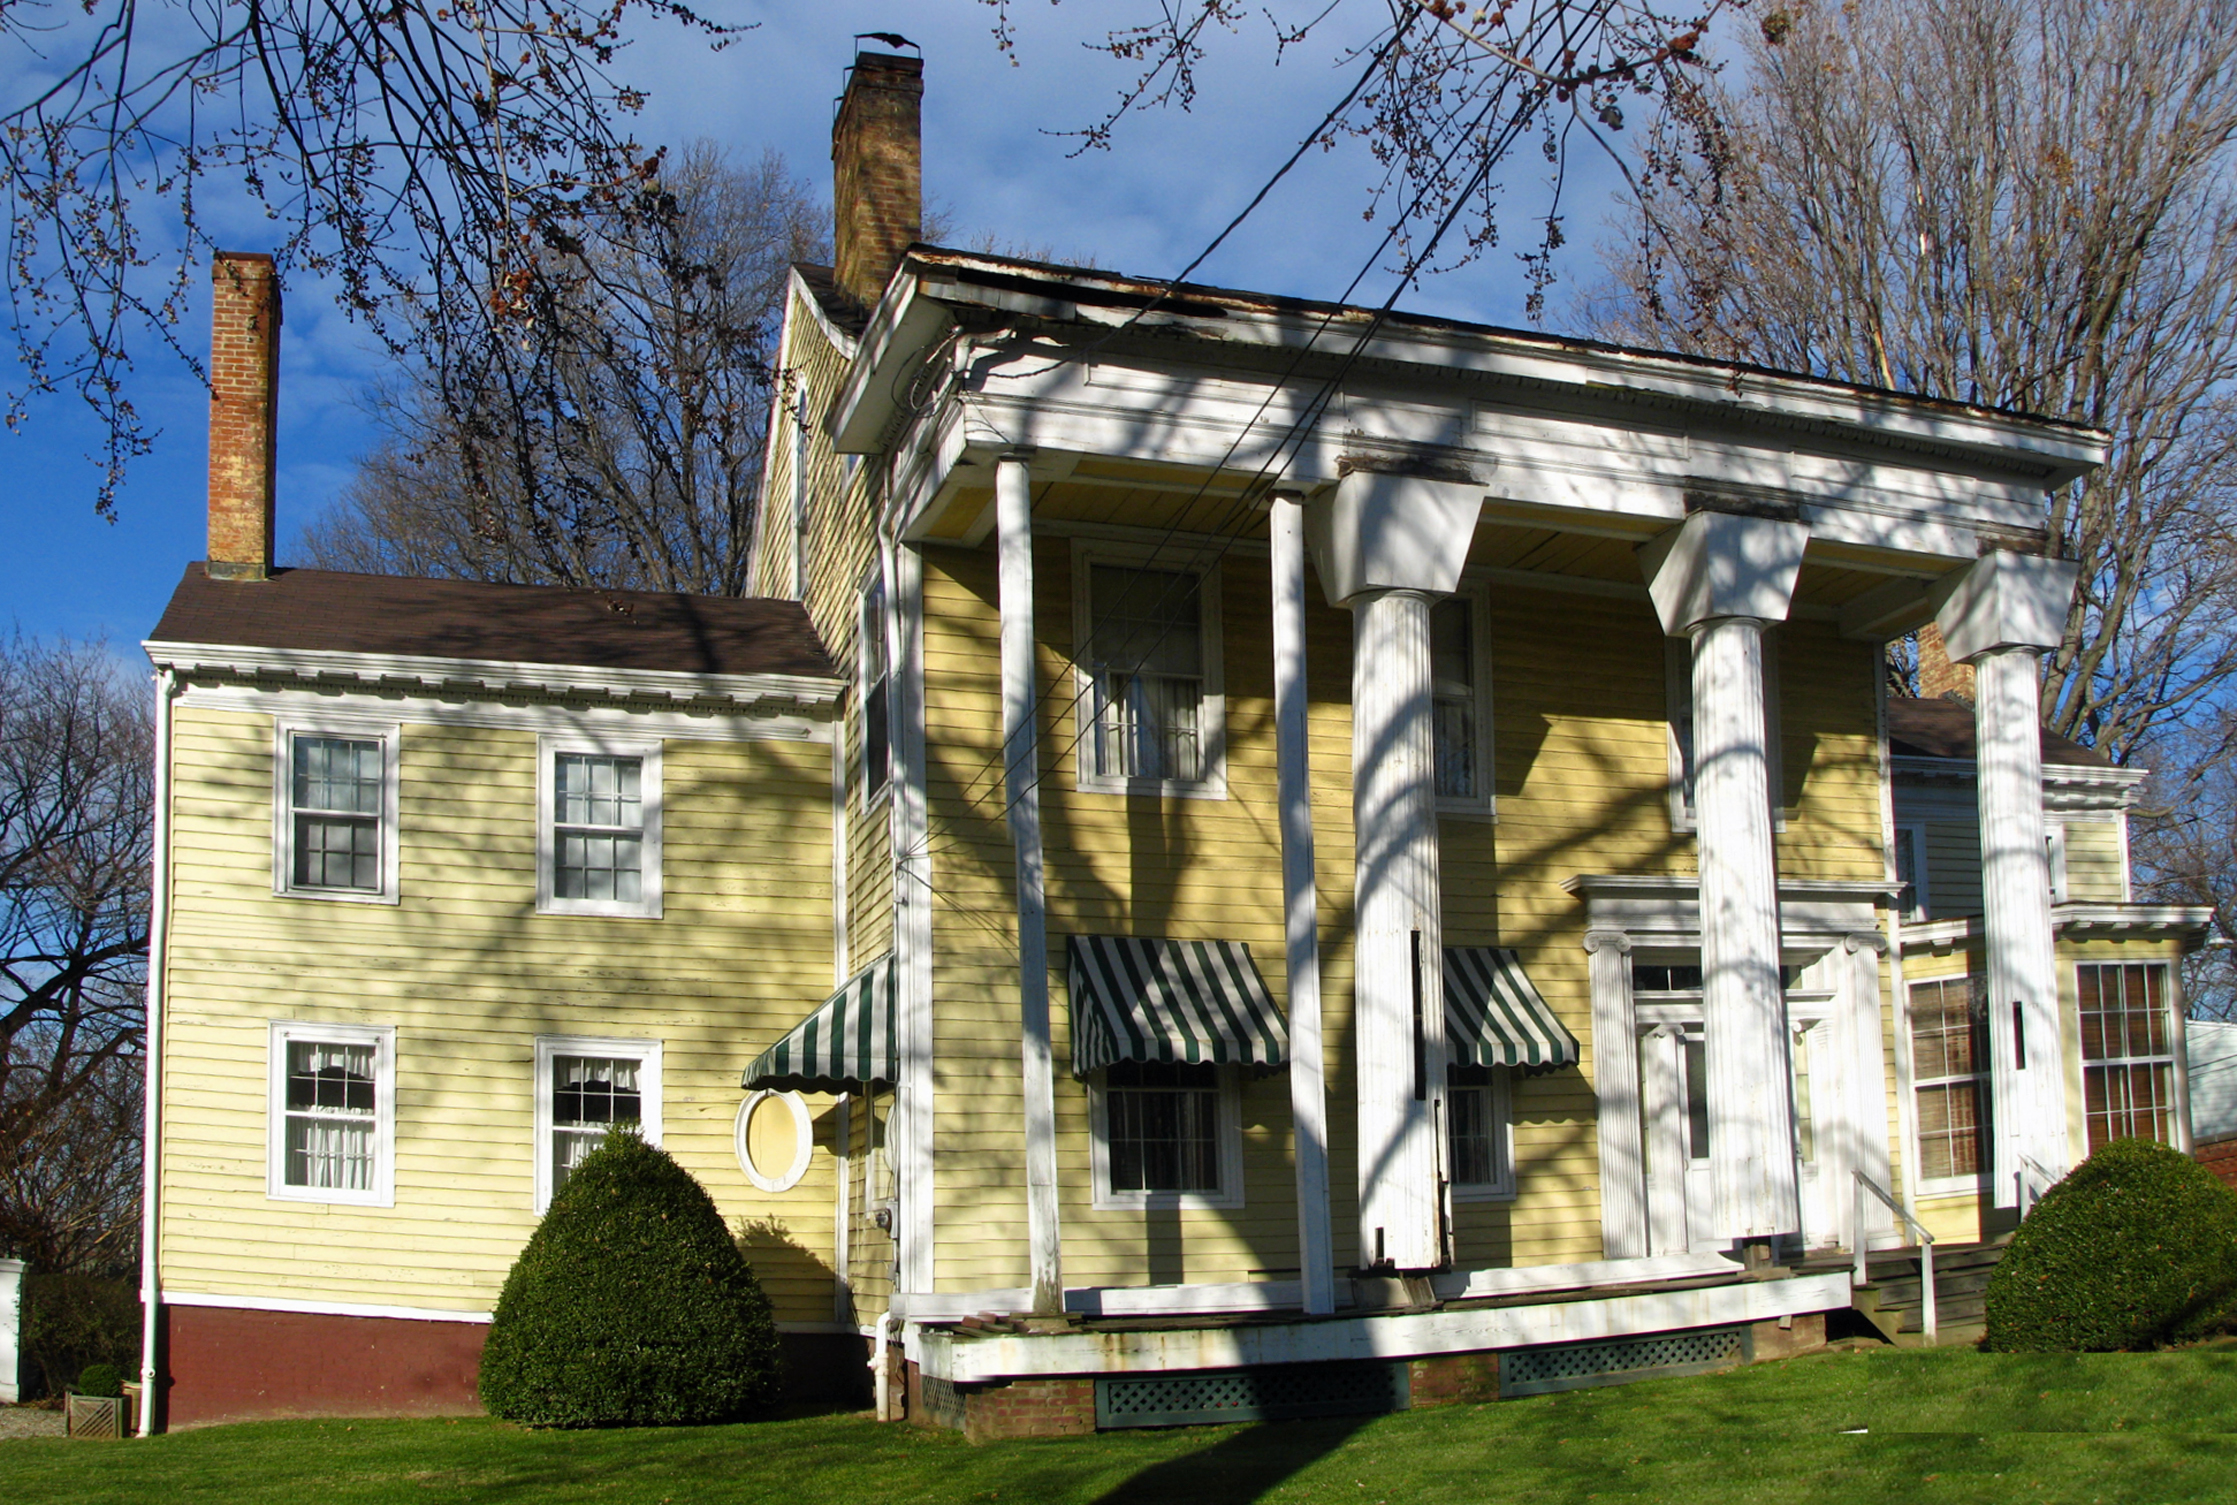 Pan of JJT House 12-8-2008 205PM CPSS51S 1.jpg